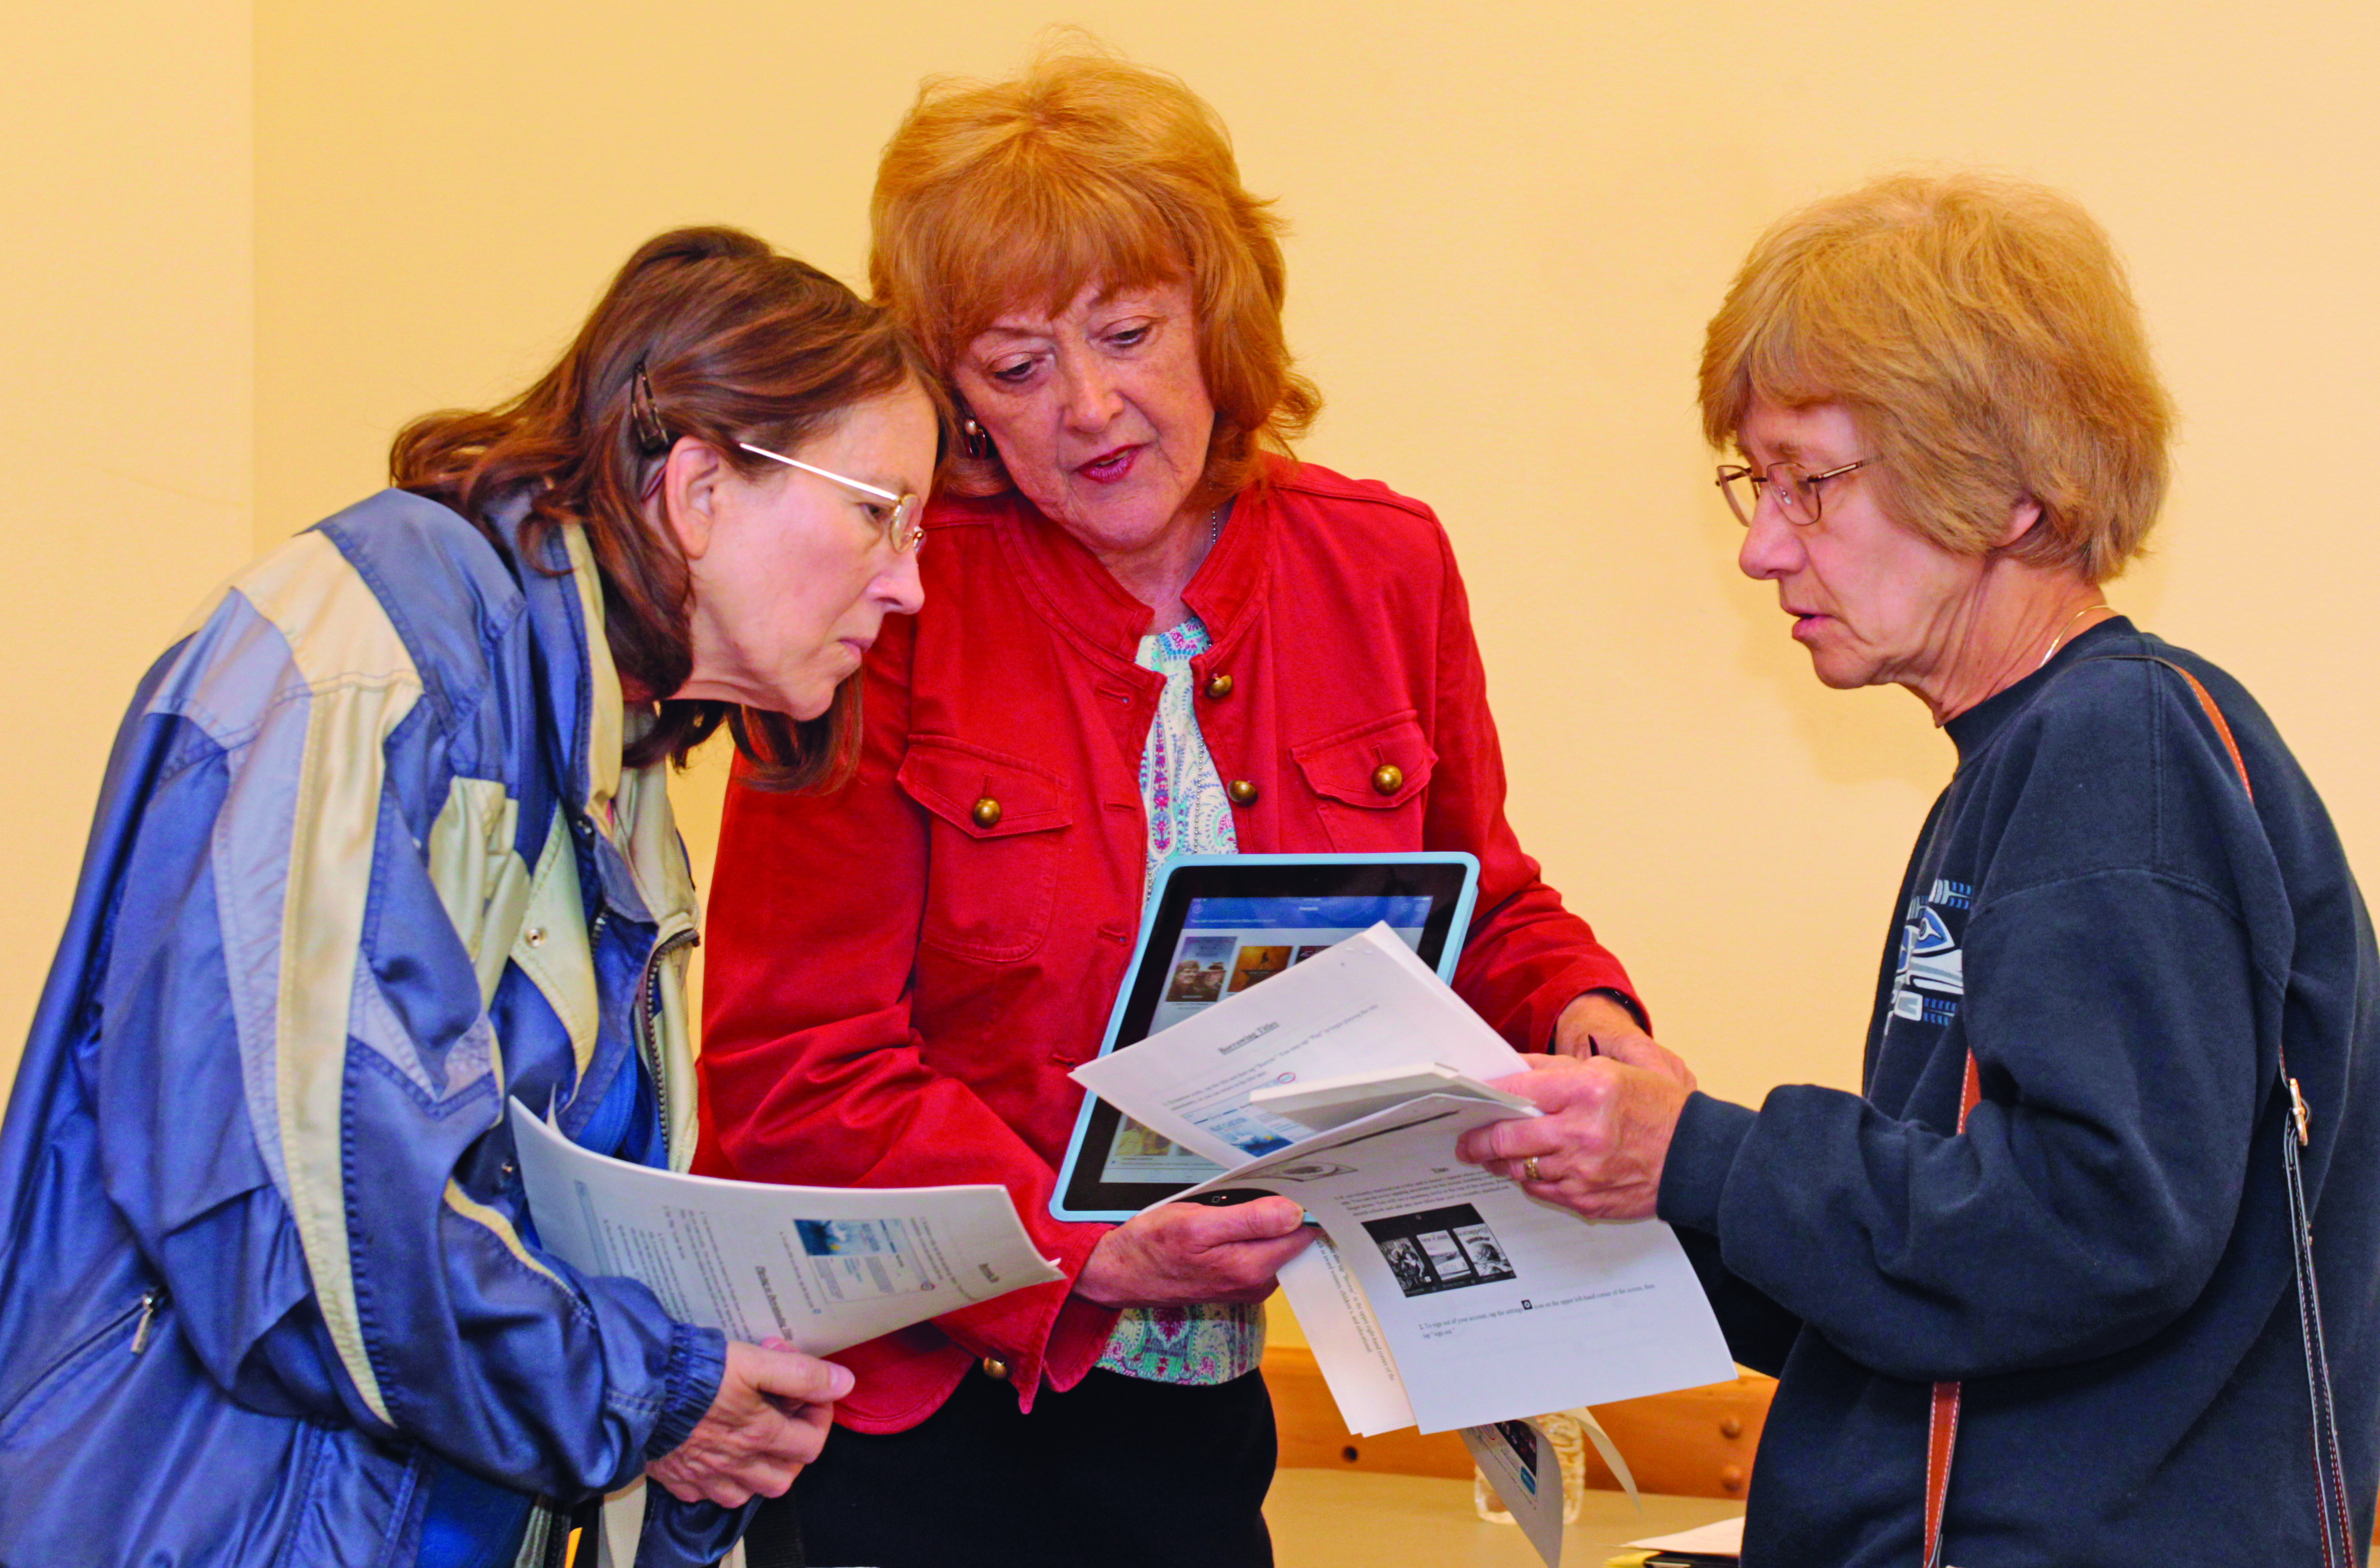 """Adult Services Librarian Karen Shalt demonstrates the """"Hoopla"""" app to Marcia Kline and Ginny Zajac. Photo by Chuck LeClaire"""